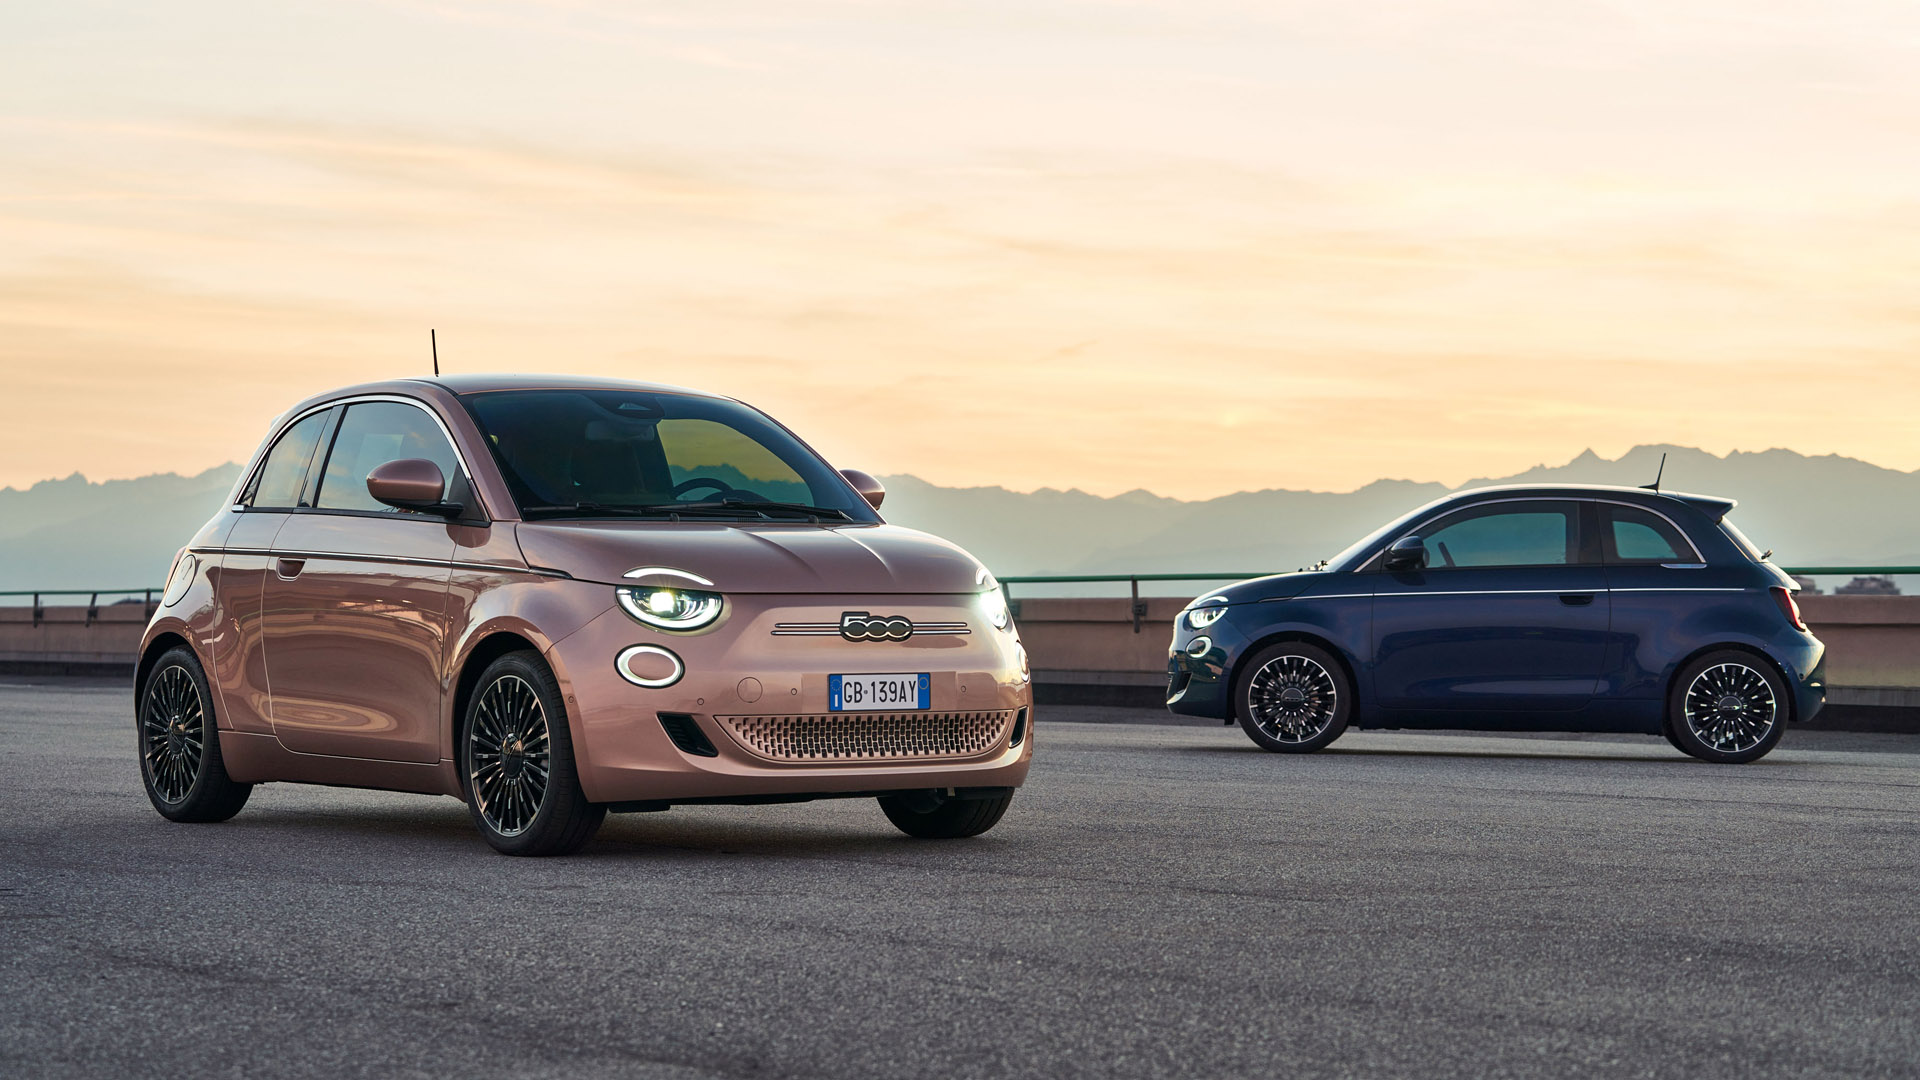 Fiat 500 Electric looks